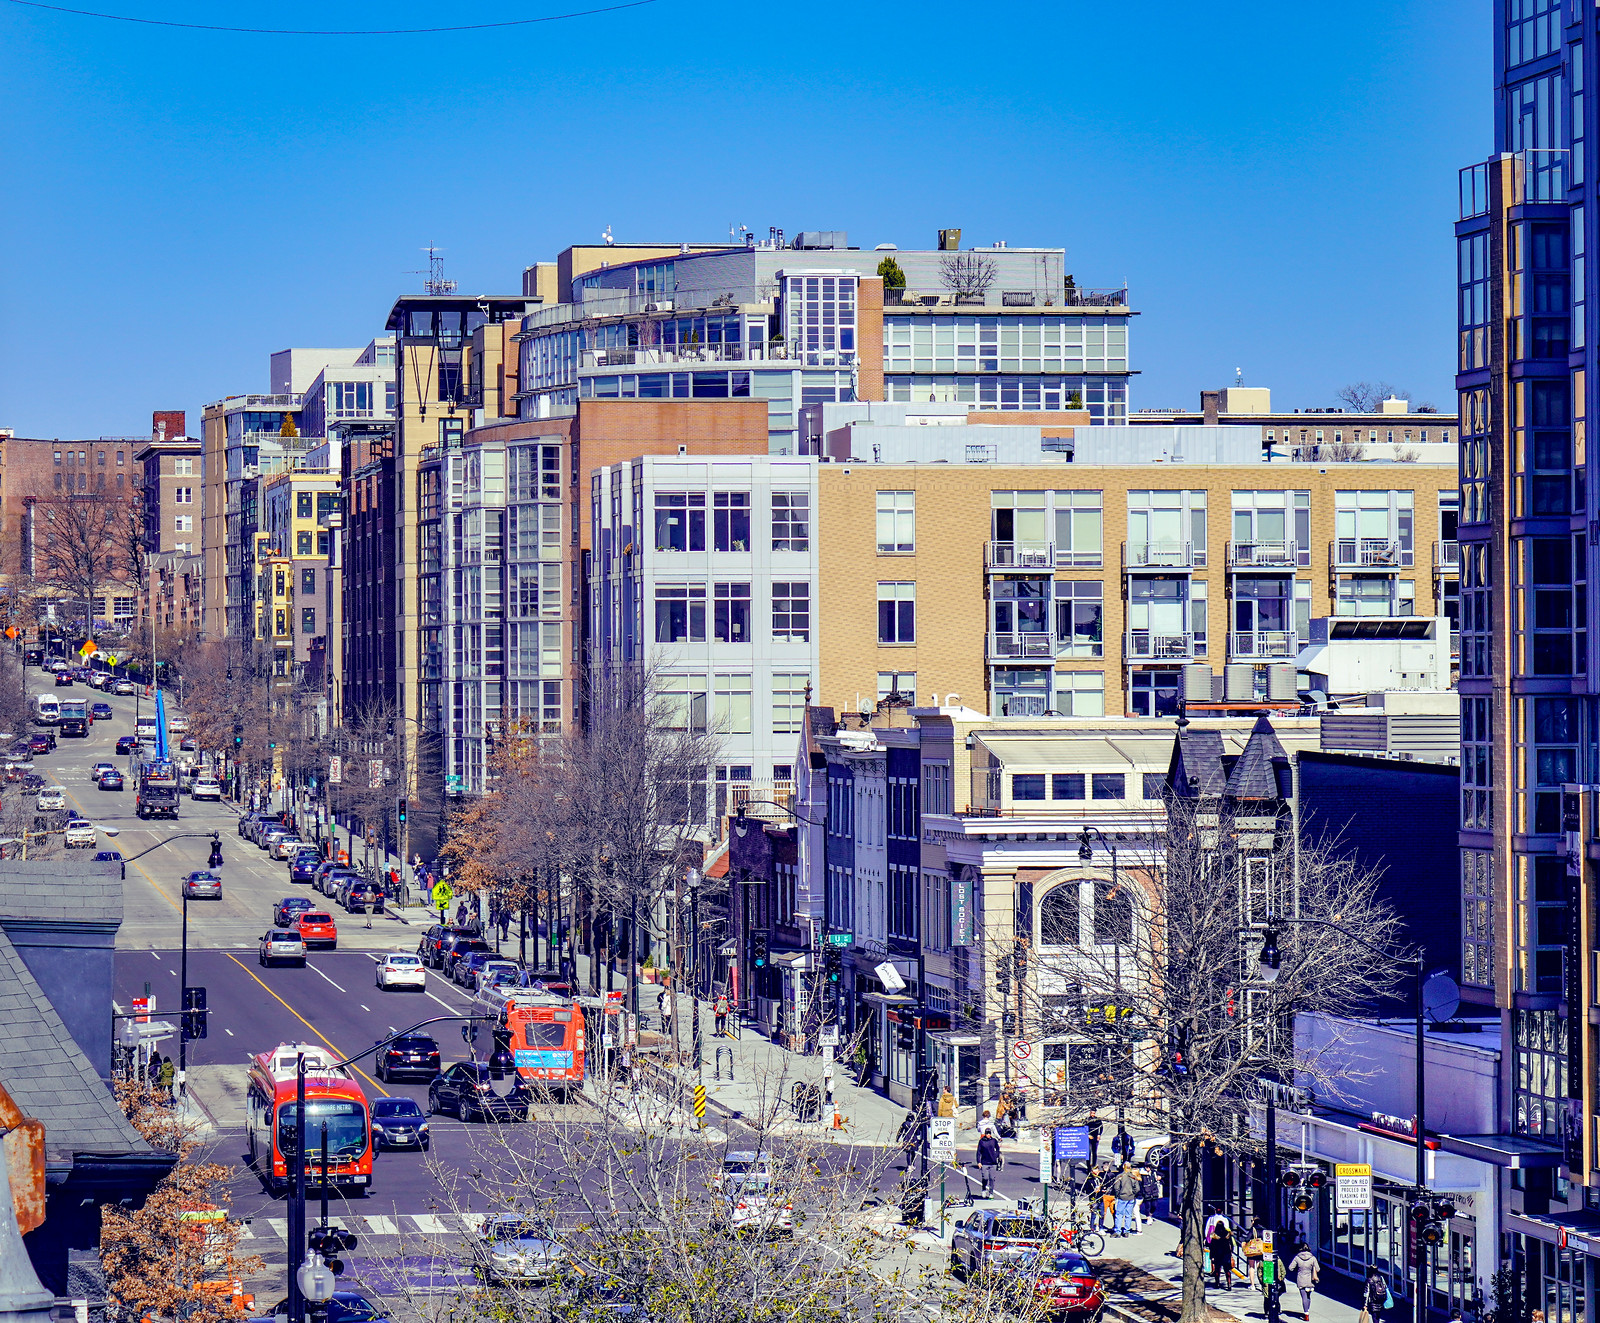 Thanks for publishing my photo, Urban Turf, in April Sees 13% Drop in DC Area Tenants Paying Rent on Time